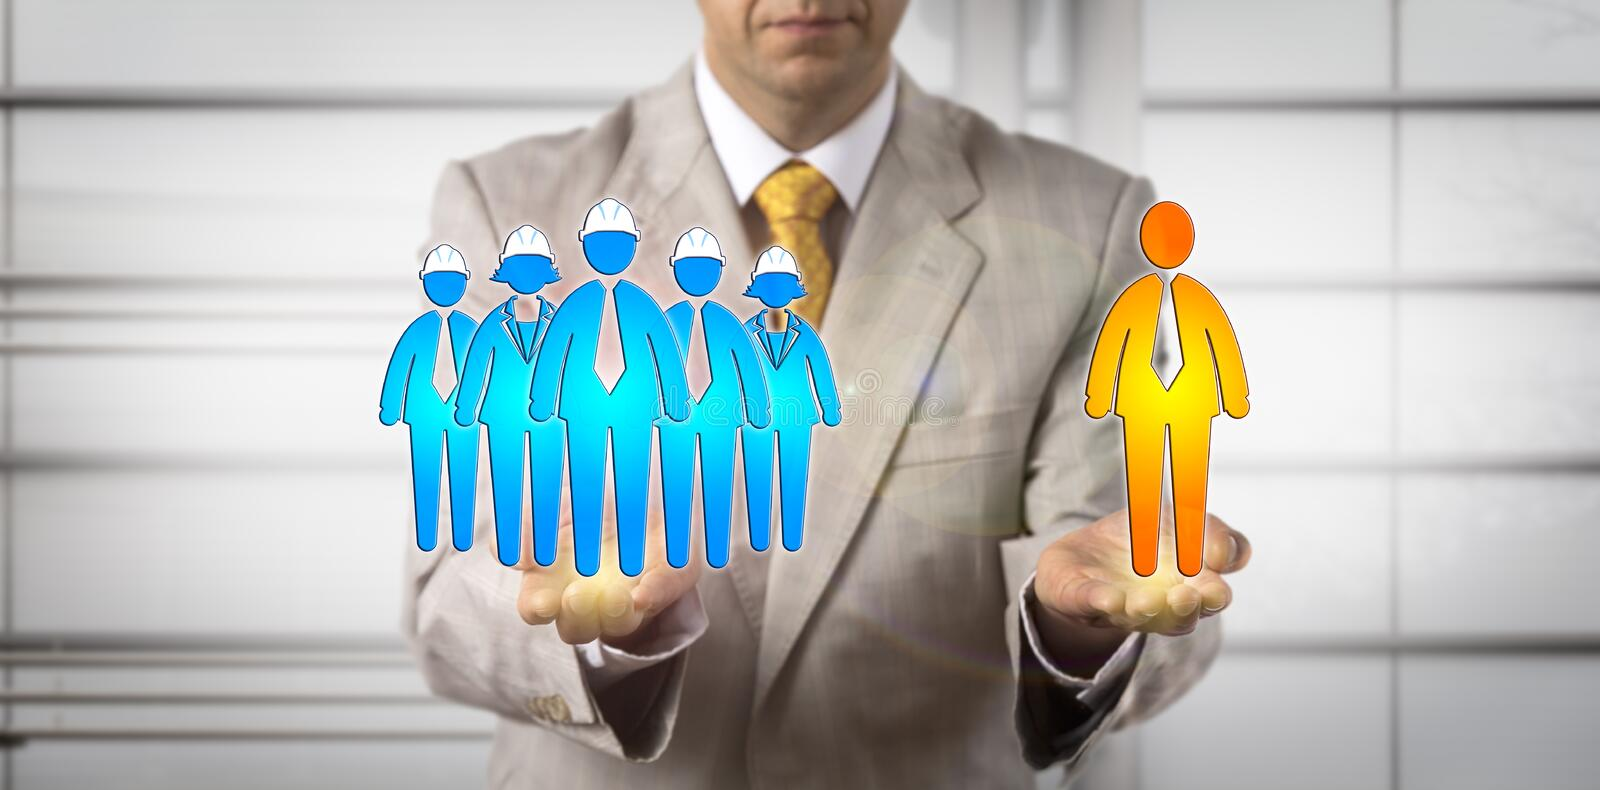 Mediator Balancing Five Workers And One Manager royalty free stock photos